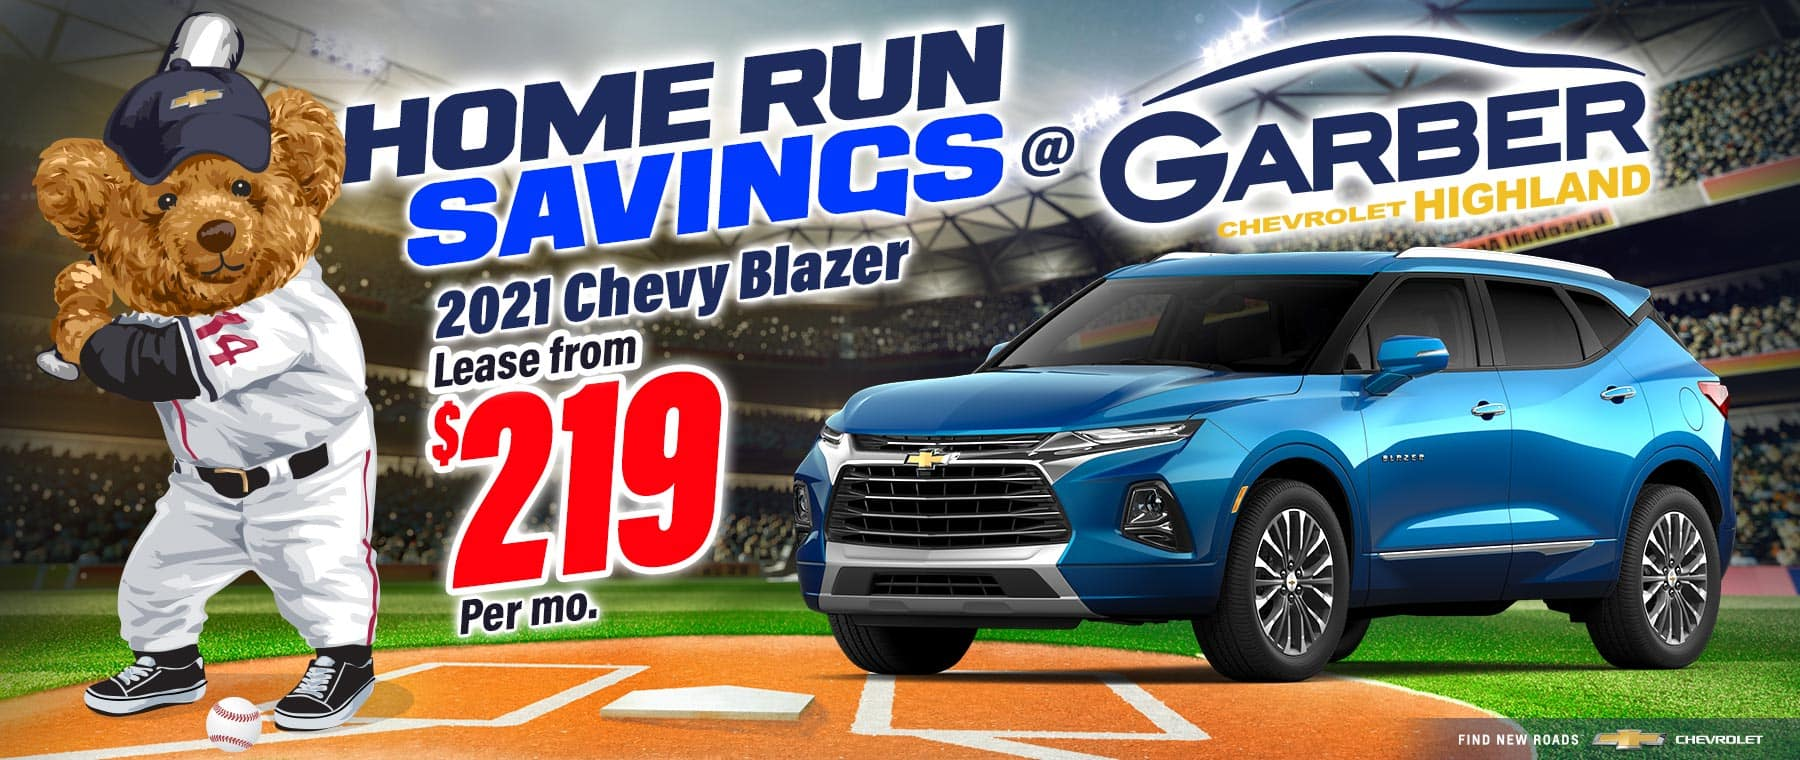 2021 Chevy Blazer - Lease From $219 per month